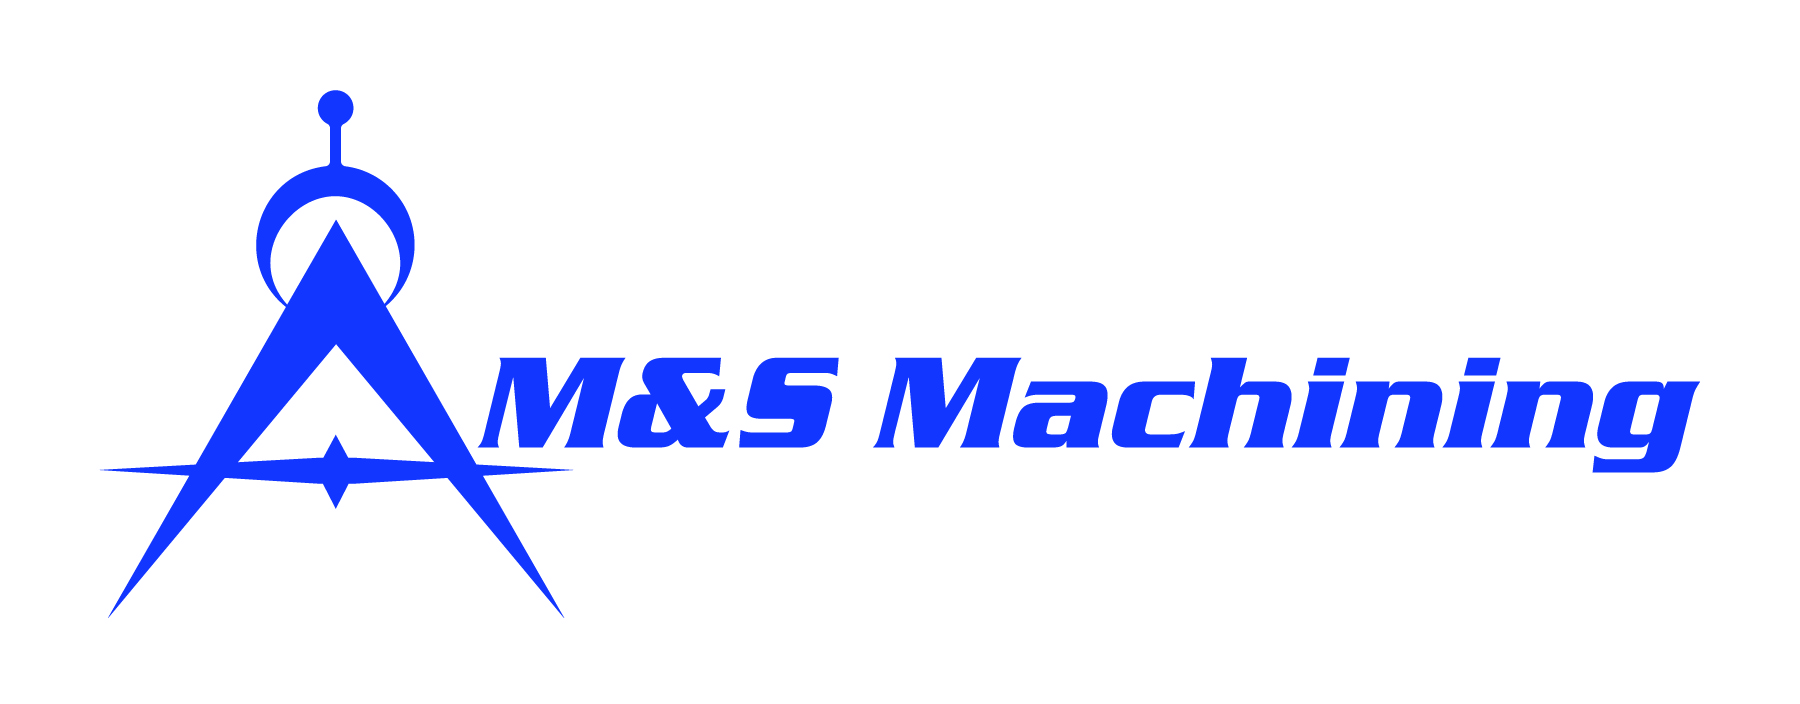 M&S Scalable Logo.jpg